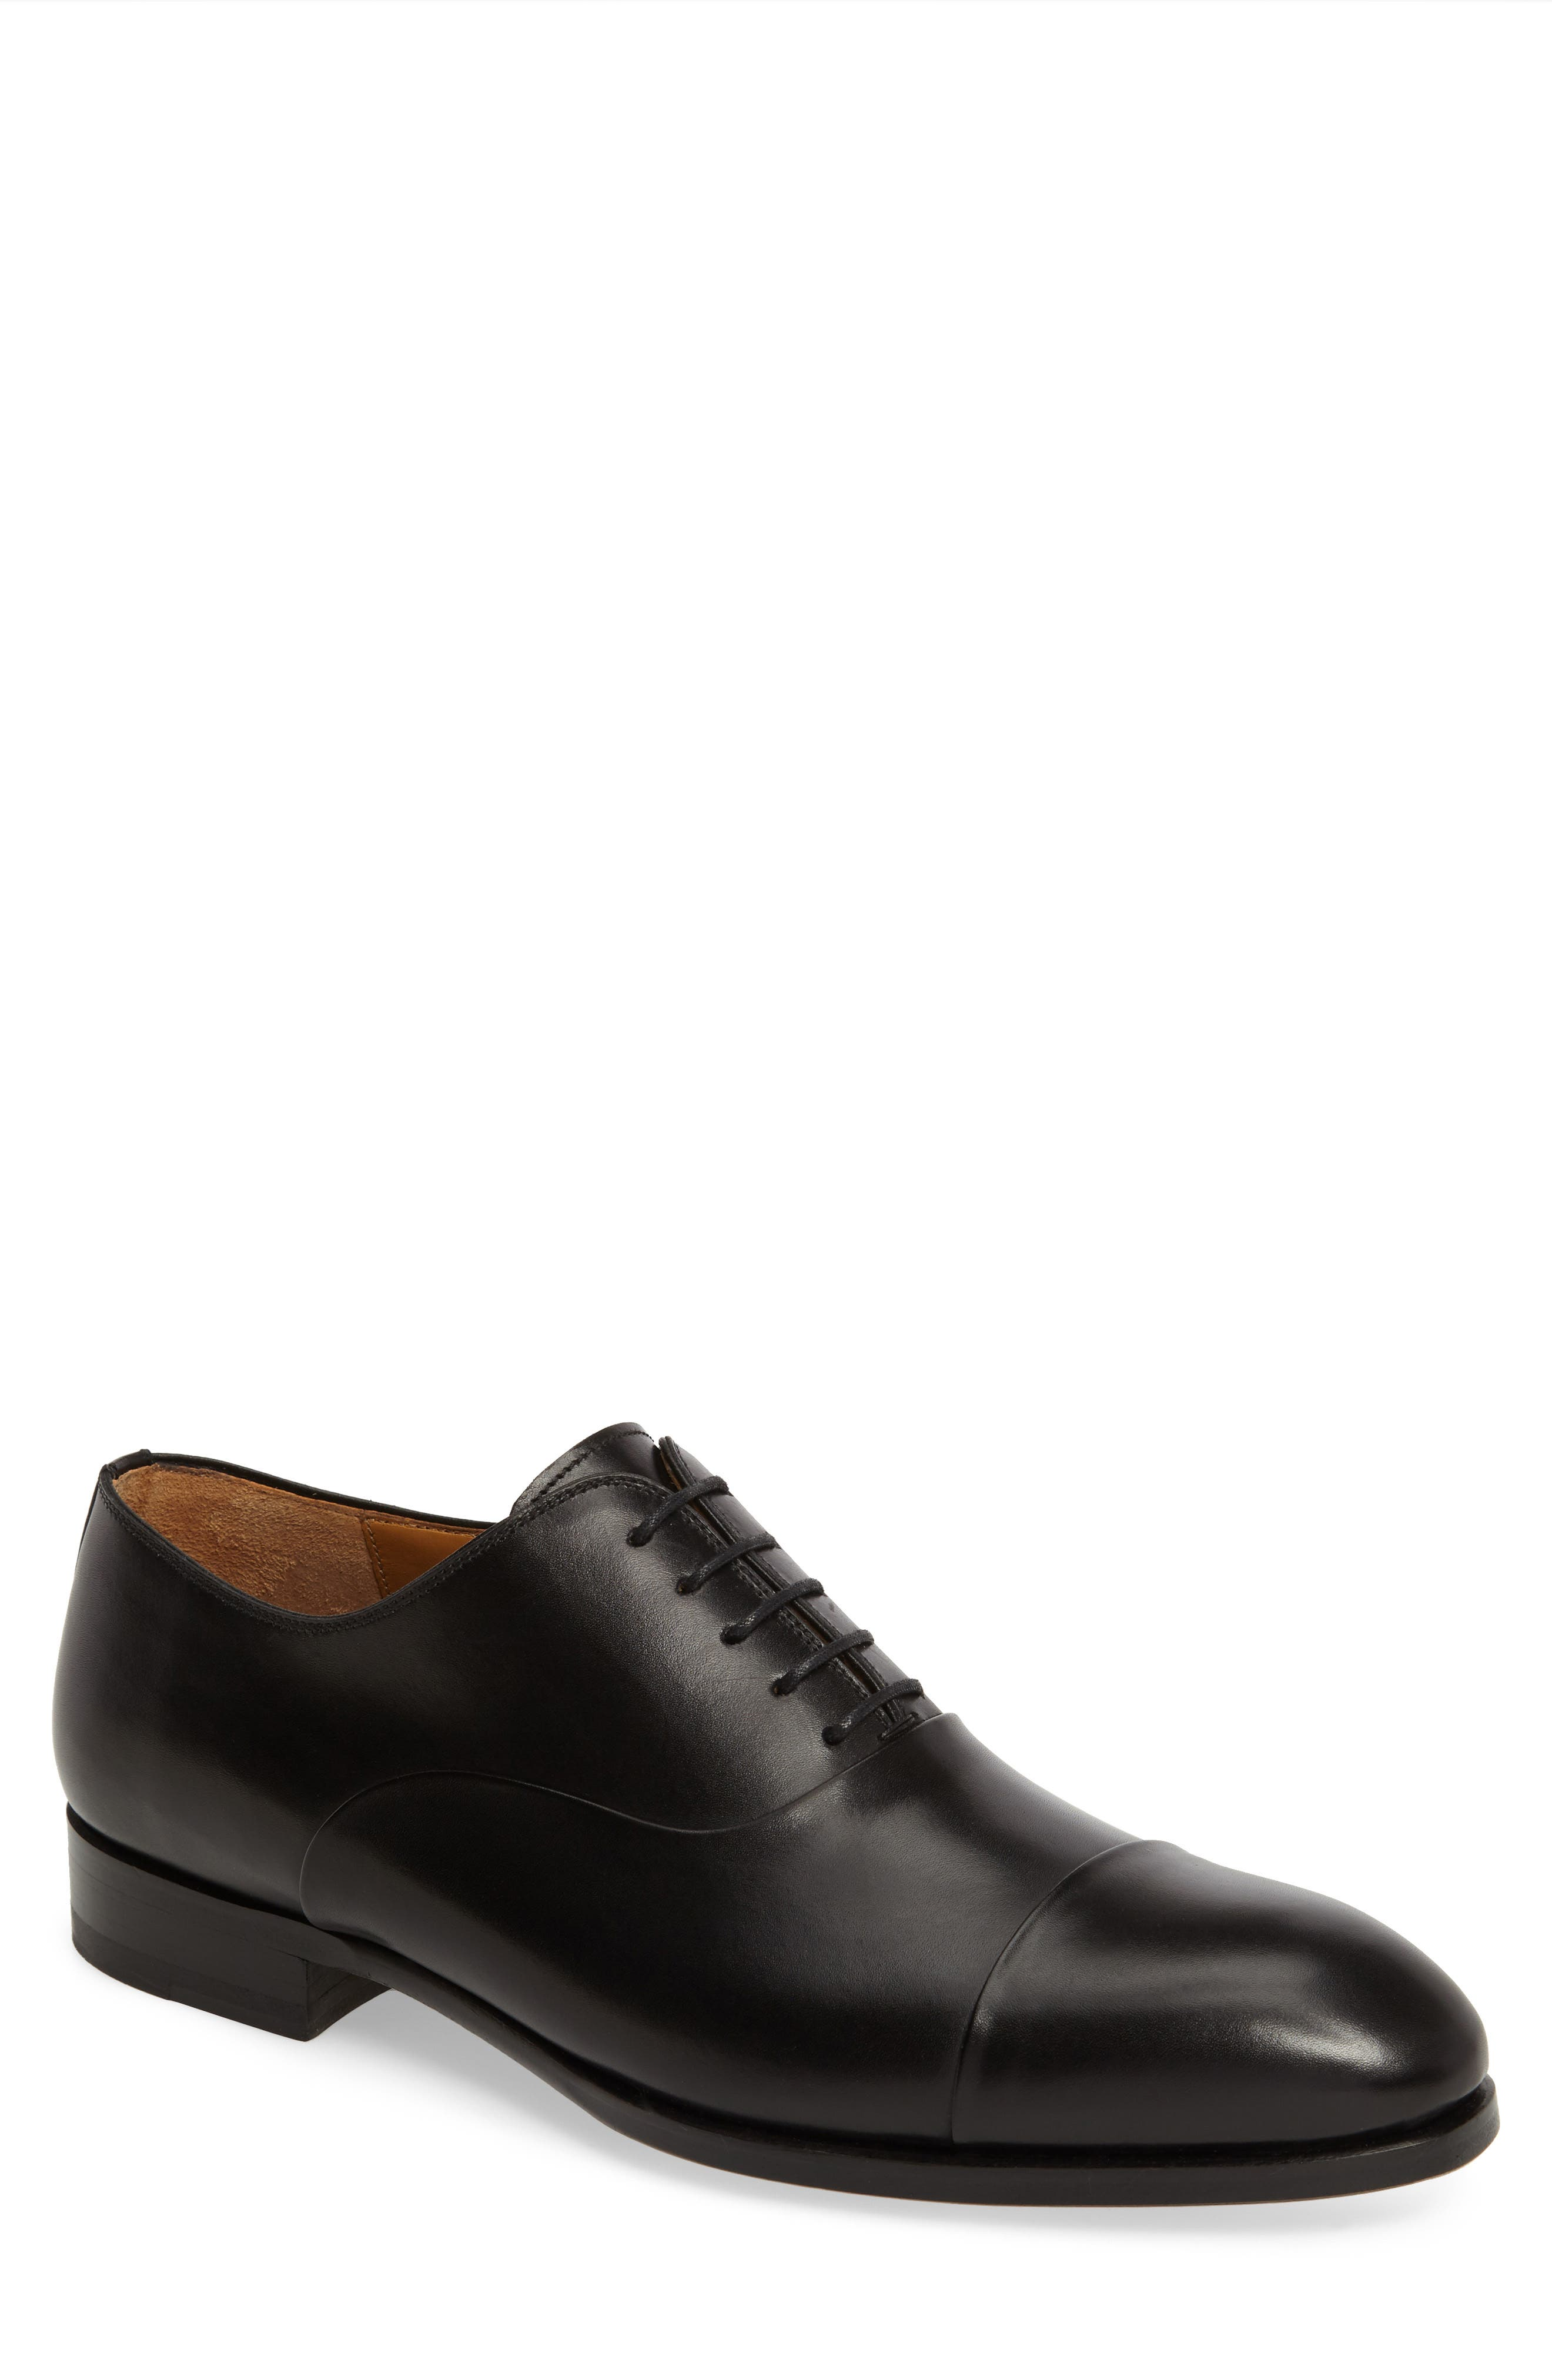 Golay Cap Toe Oxford,                         Main,                         color, BLACK LEATHER